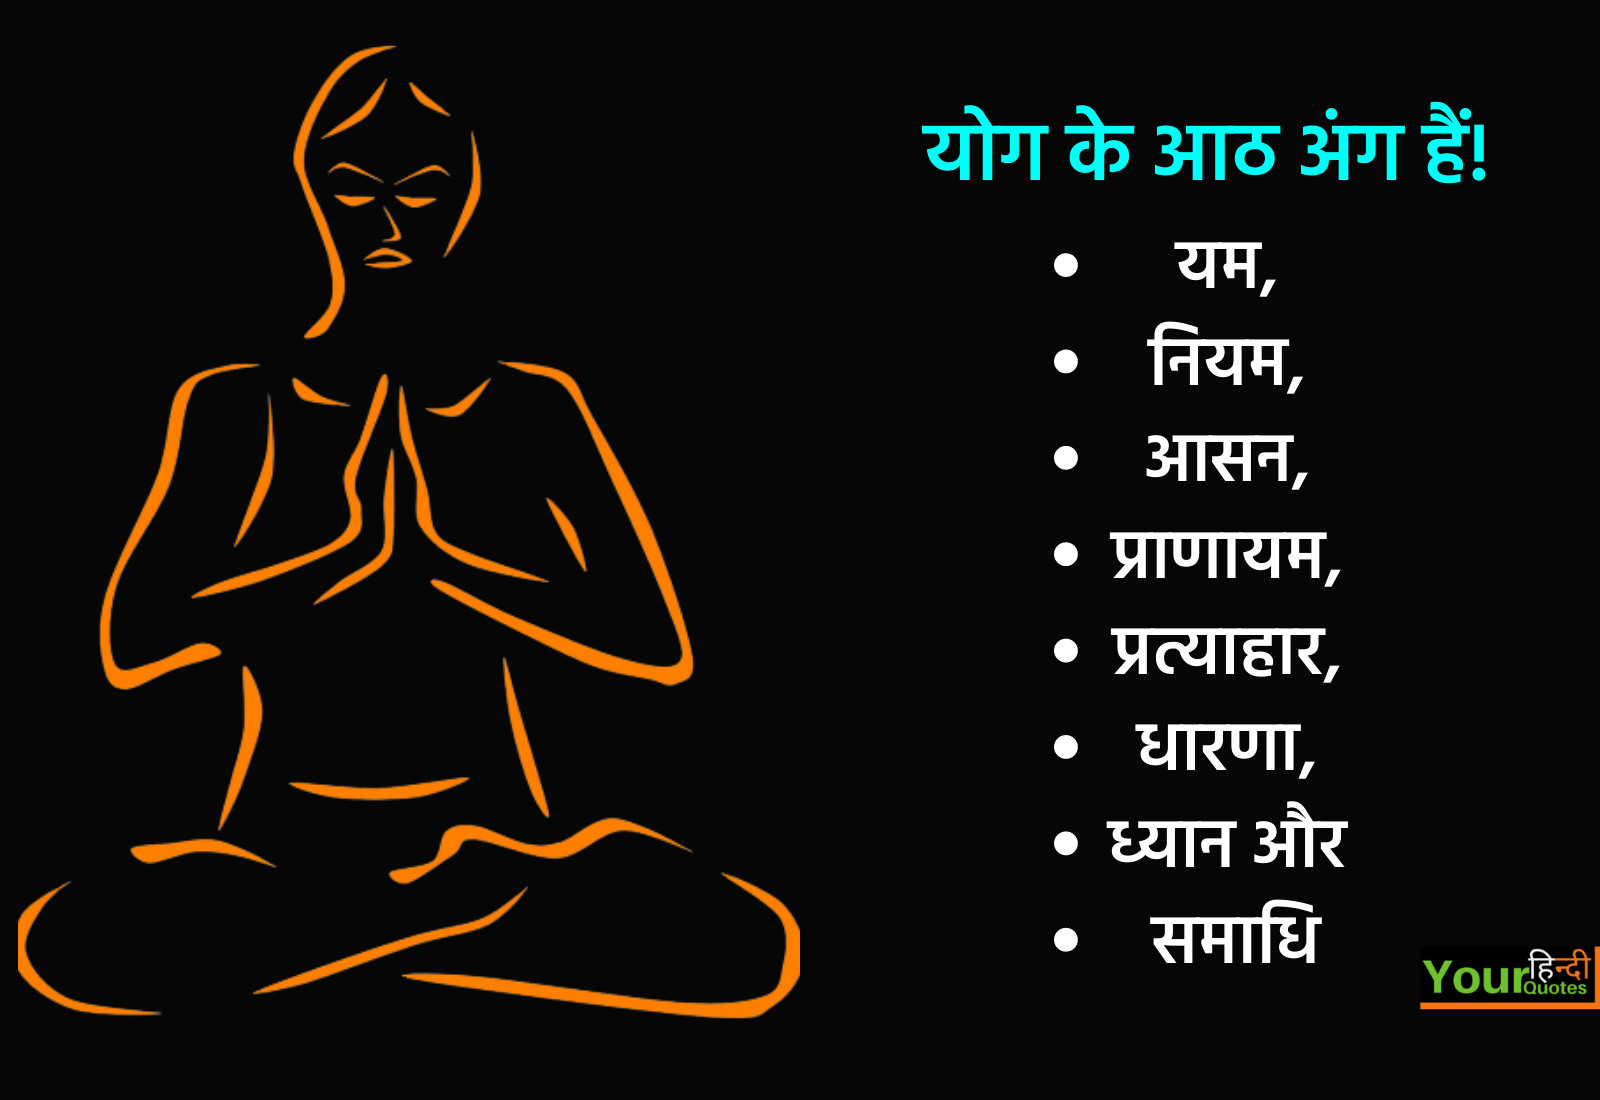 Hindi Yoga Quotes Photos